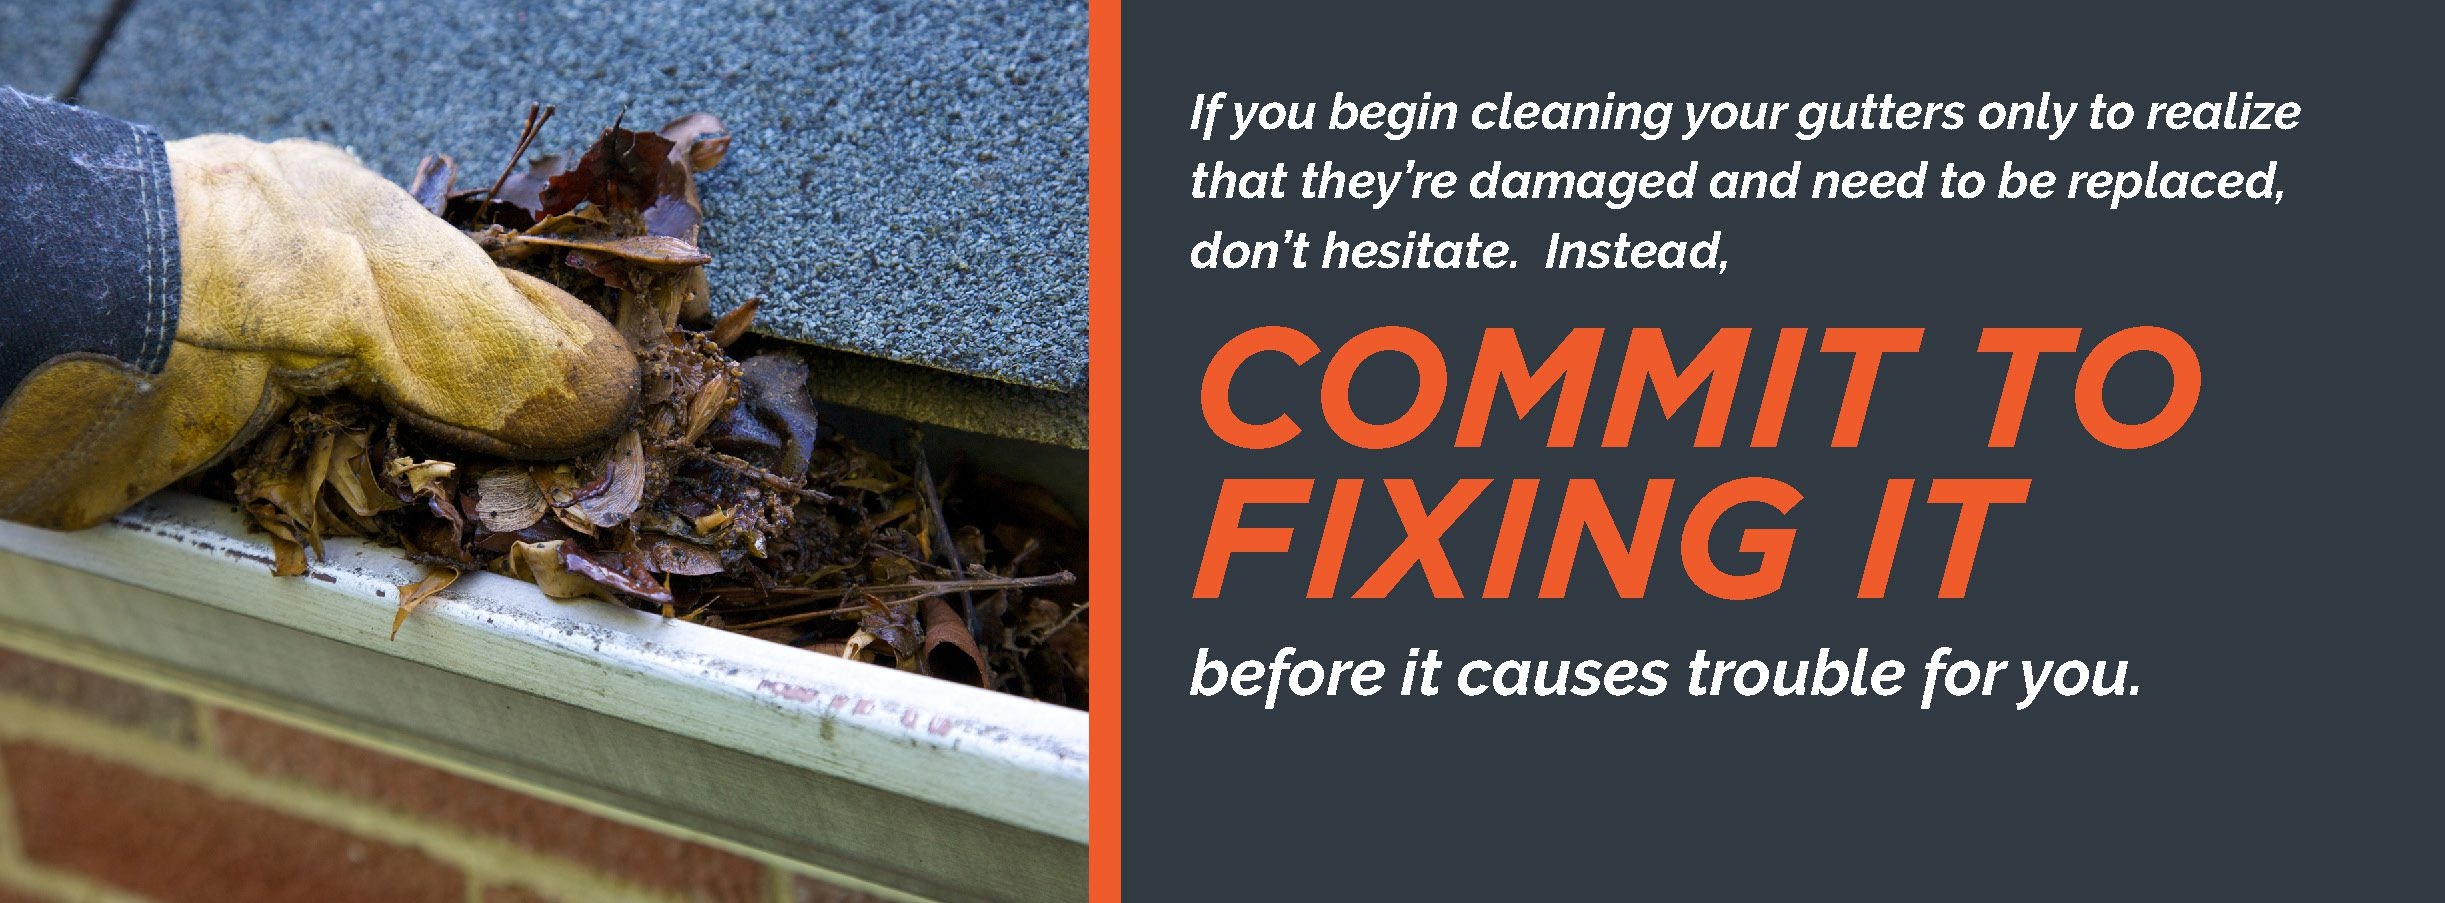 Fix and replace damaged gutters